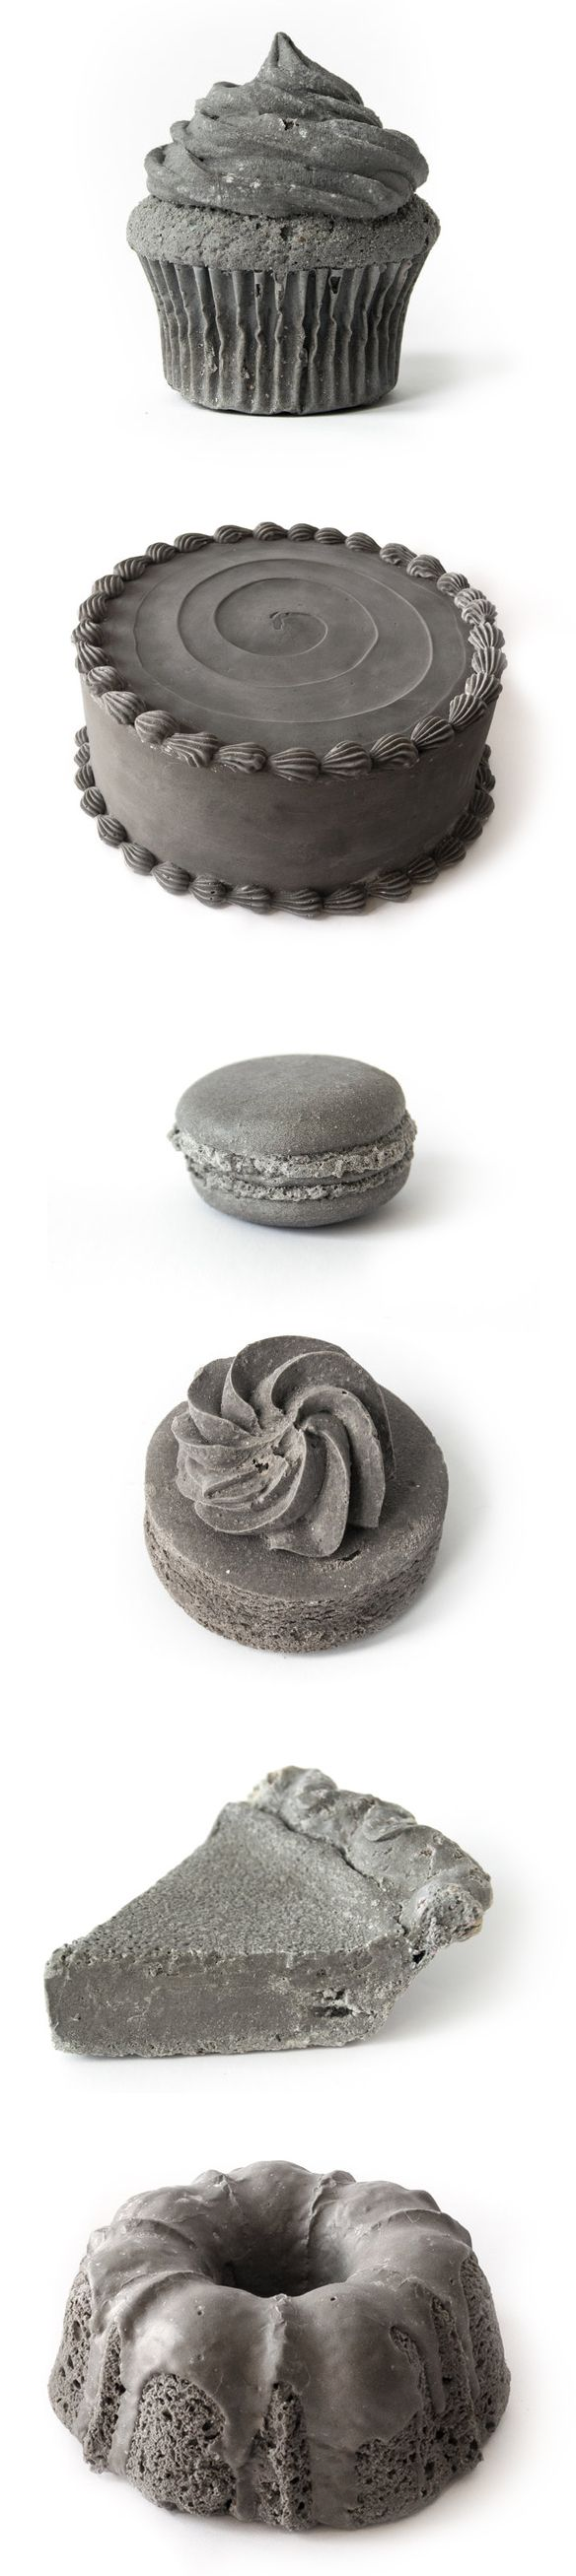 """coal comforts"" by spencer merolla (""baked"" goods made of ash from burned coal.) #climatechange #art #cupcakes"